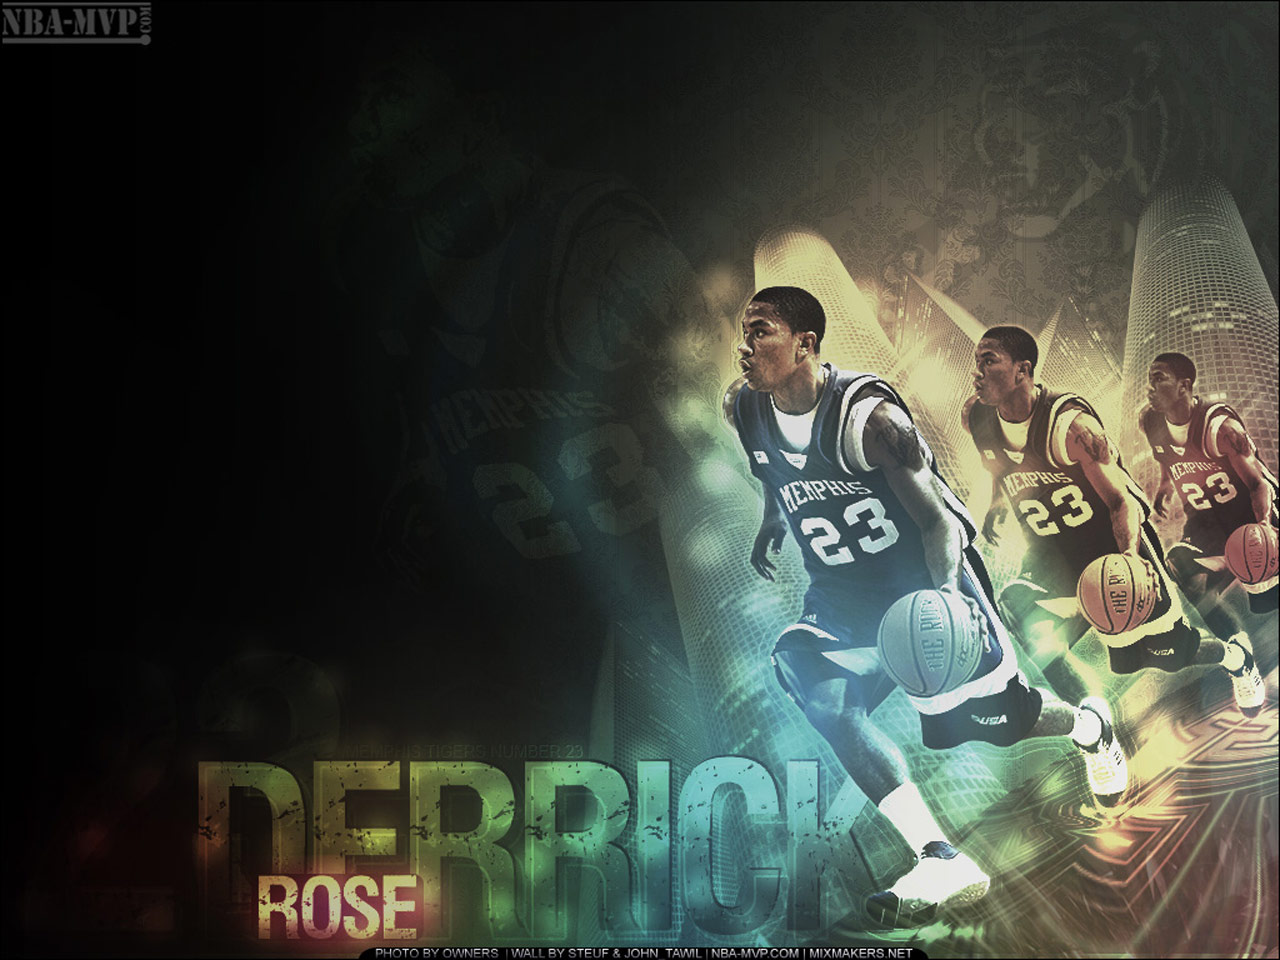 Derrick Rose basketball wallpapers NBA Wallpapers 1280x960